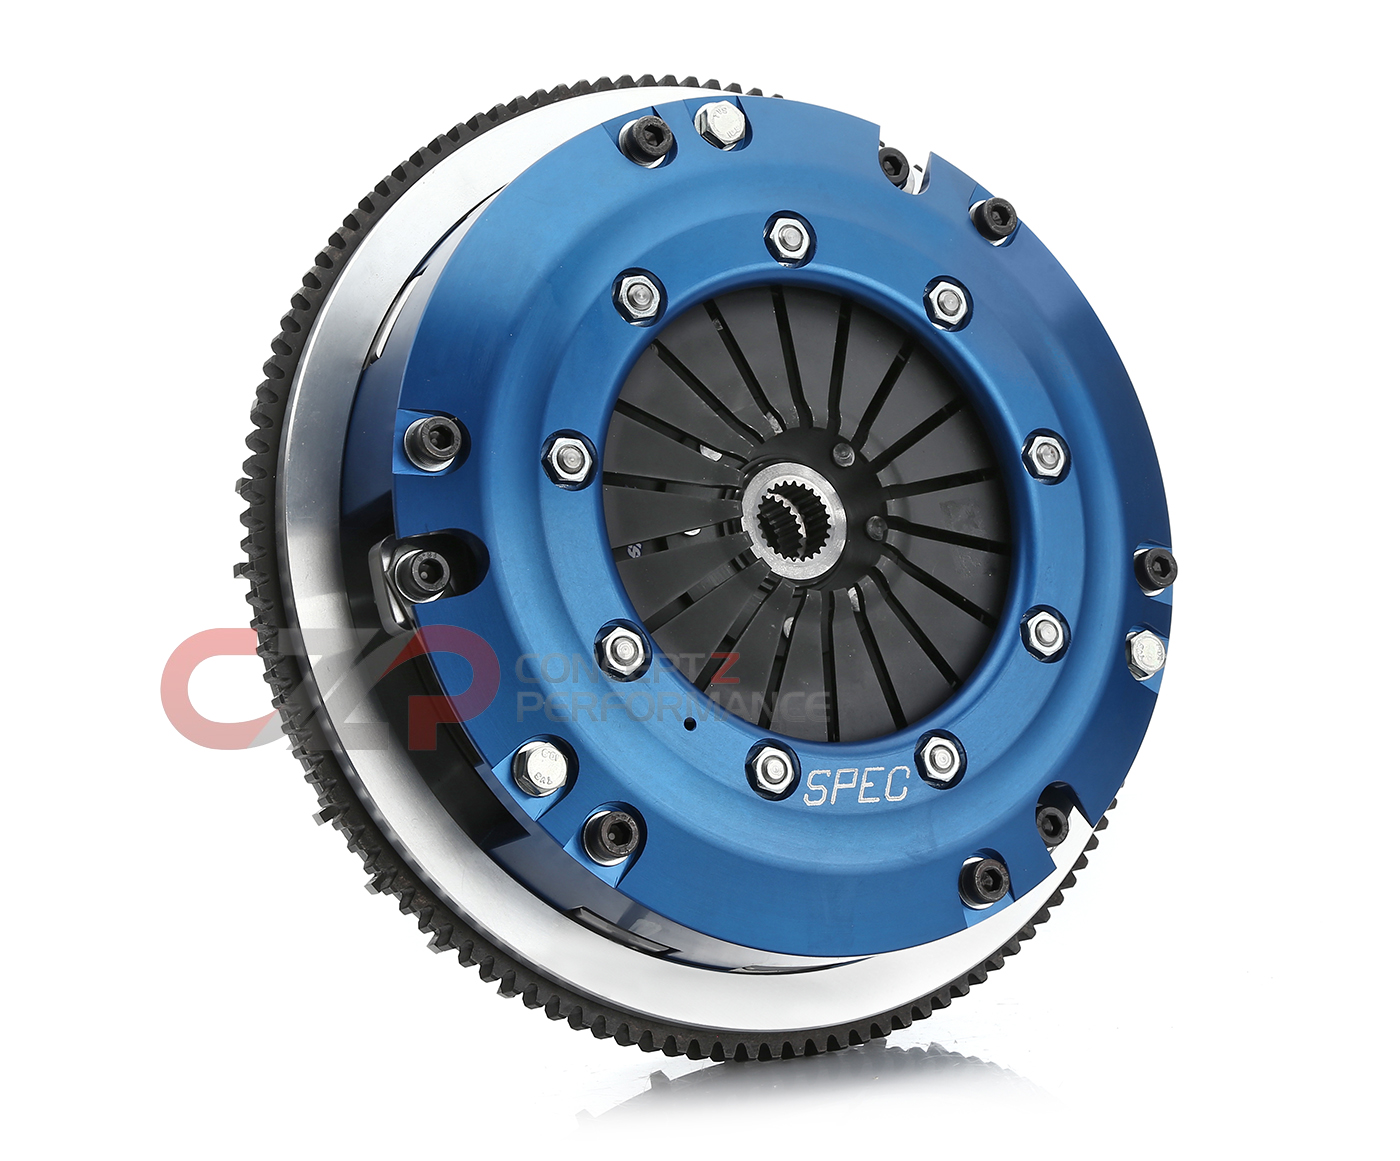 SPEC Spec Super Twin Disc Clutch Kit, ST-Trim 1125 ft/lbs, VQ35HR VQ37VHR -  Nissan 350Z 370Z / Infiniti G35 G37 Q40 Q60 SN35ST-2 - Concept Z